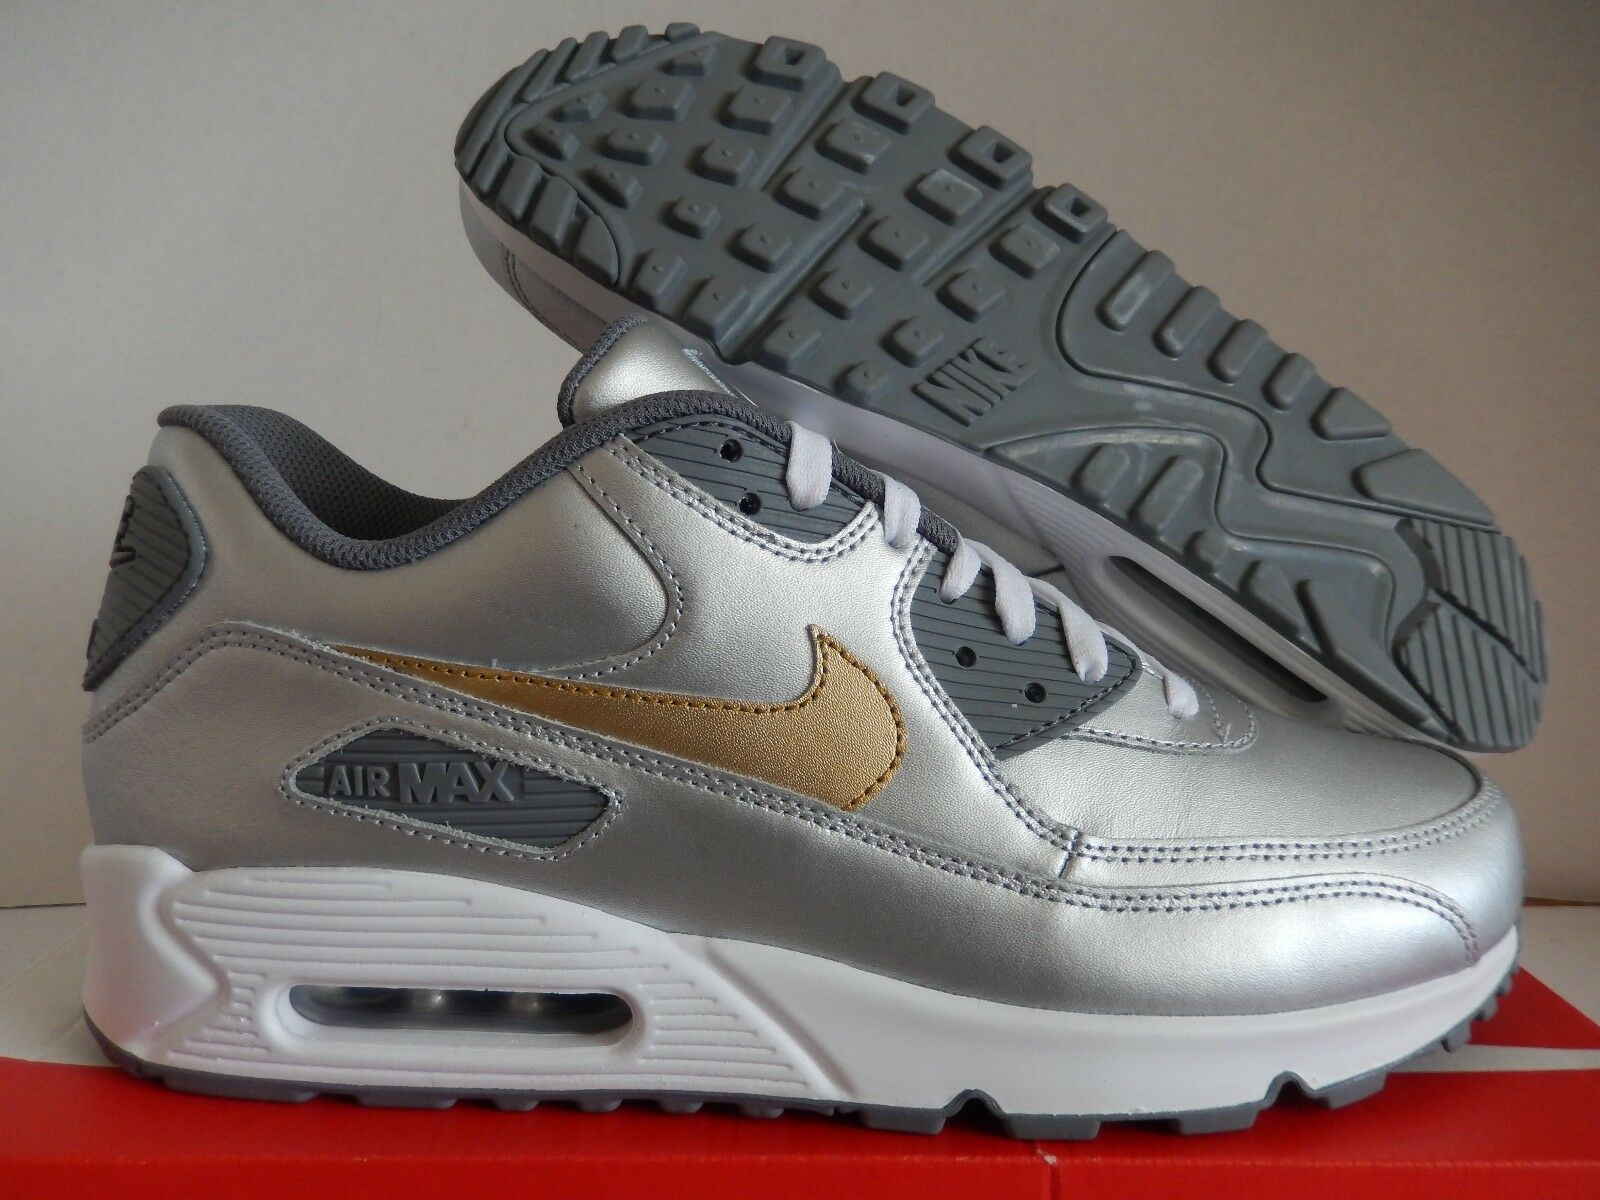 NIKE AIR MAX 90 ID SILVER-GOLD-WHITE Price reduction Seasonal price cuts, discount benefits